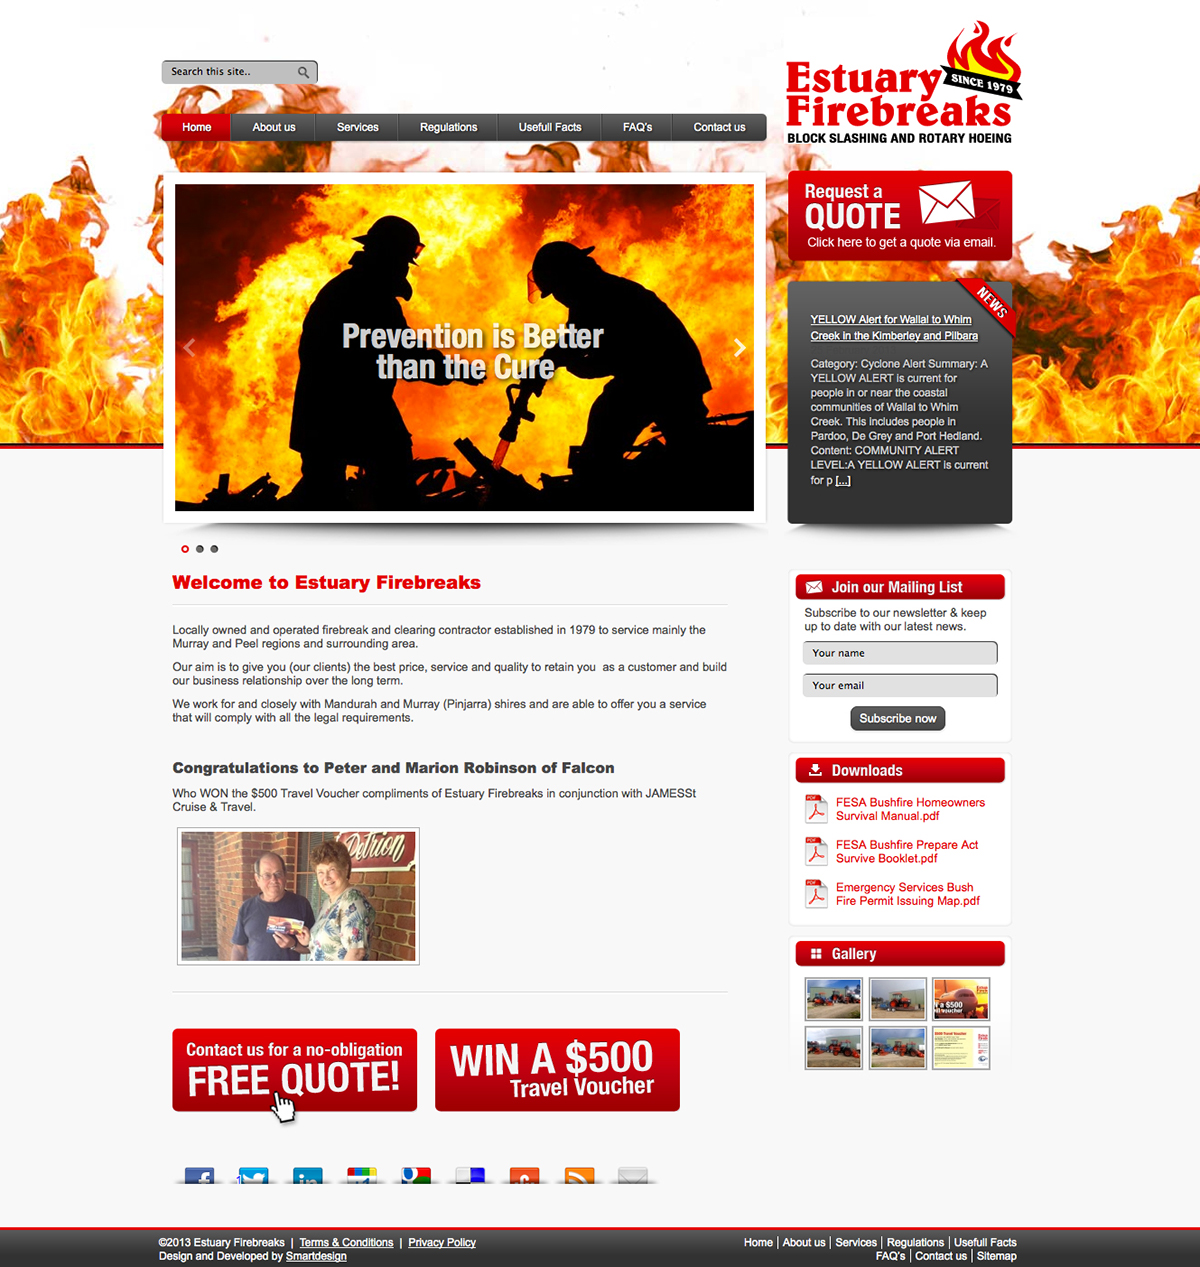 Design & Development of the Estuary Firebreaks Website